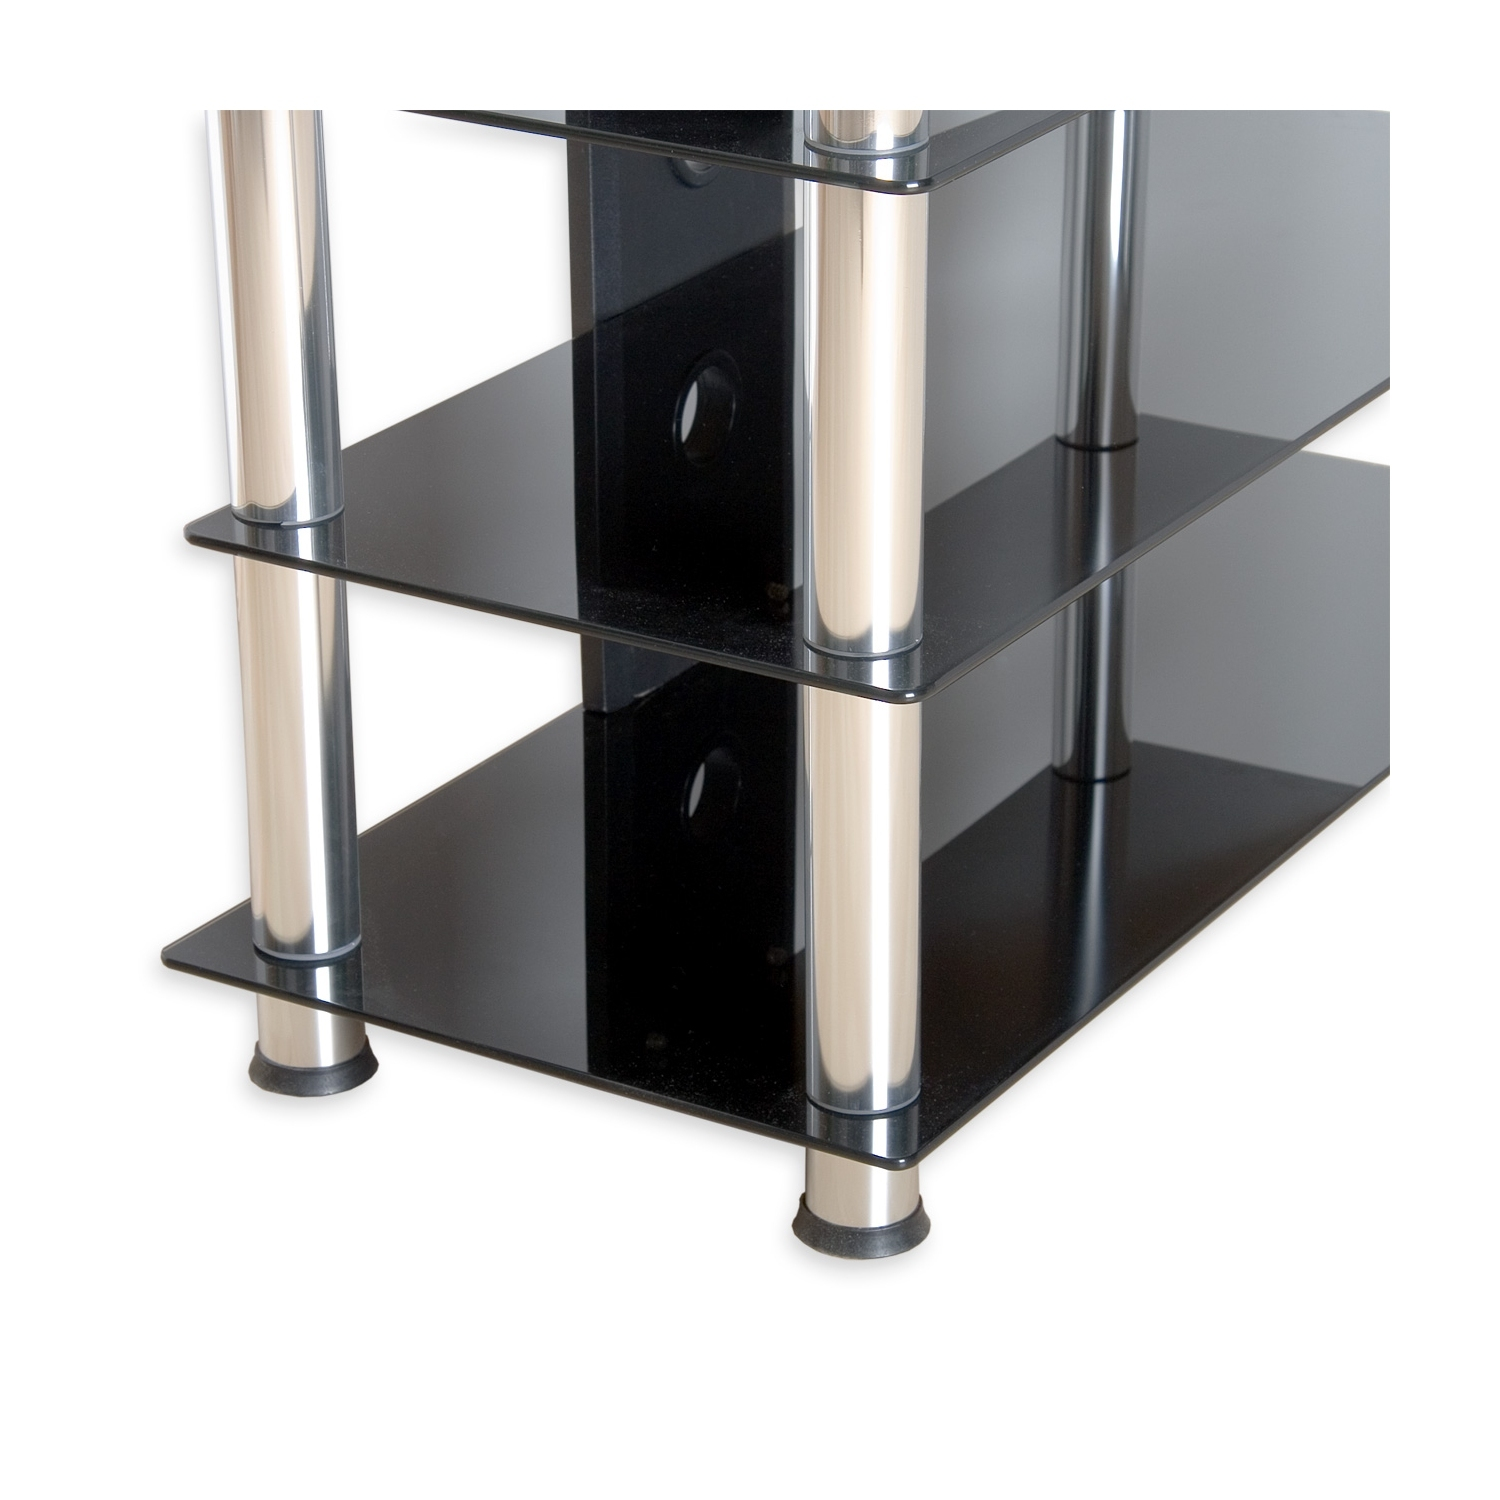 stilista tv rack schrank st nder m bel regal hifi audio glas schwarzglas ebay. Black Bedroom Furniture Sets. Home Design Ideas